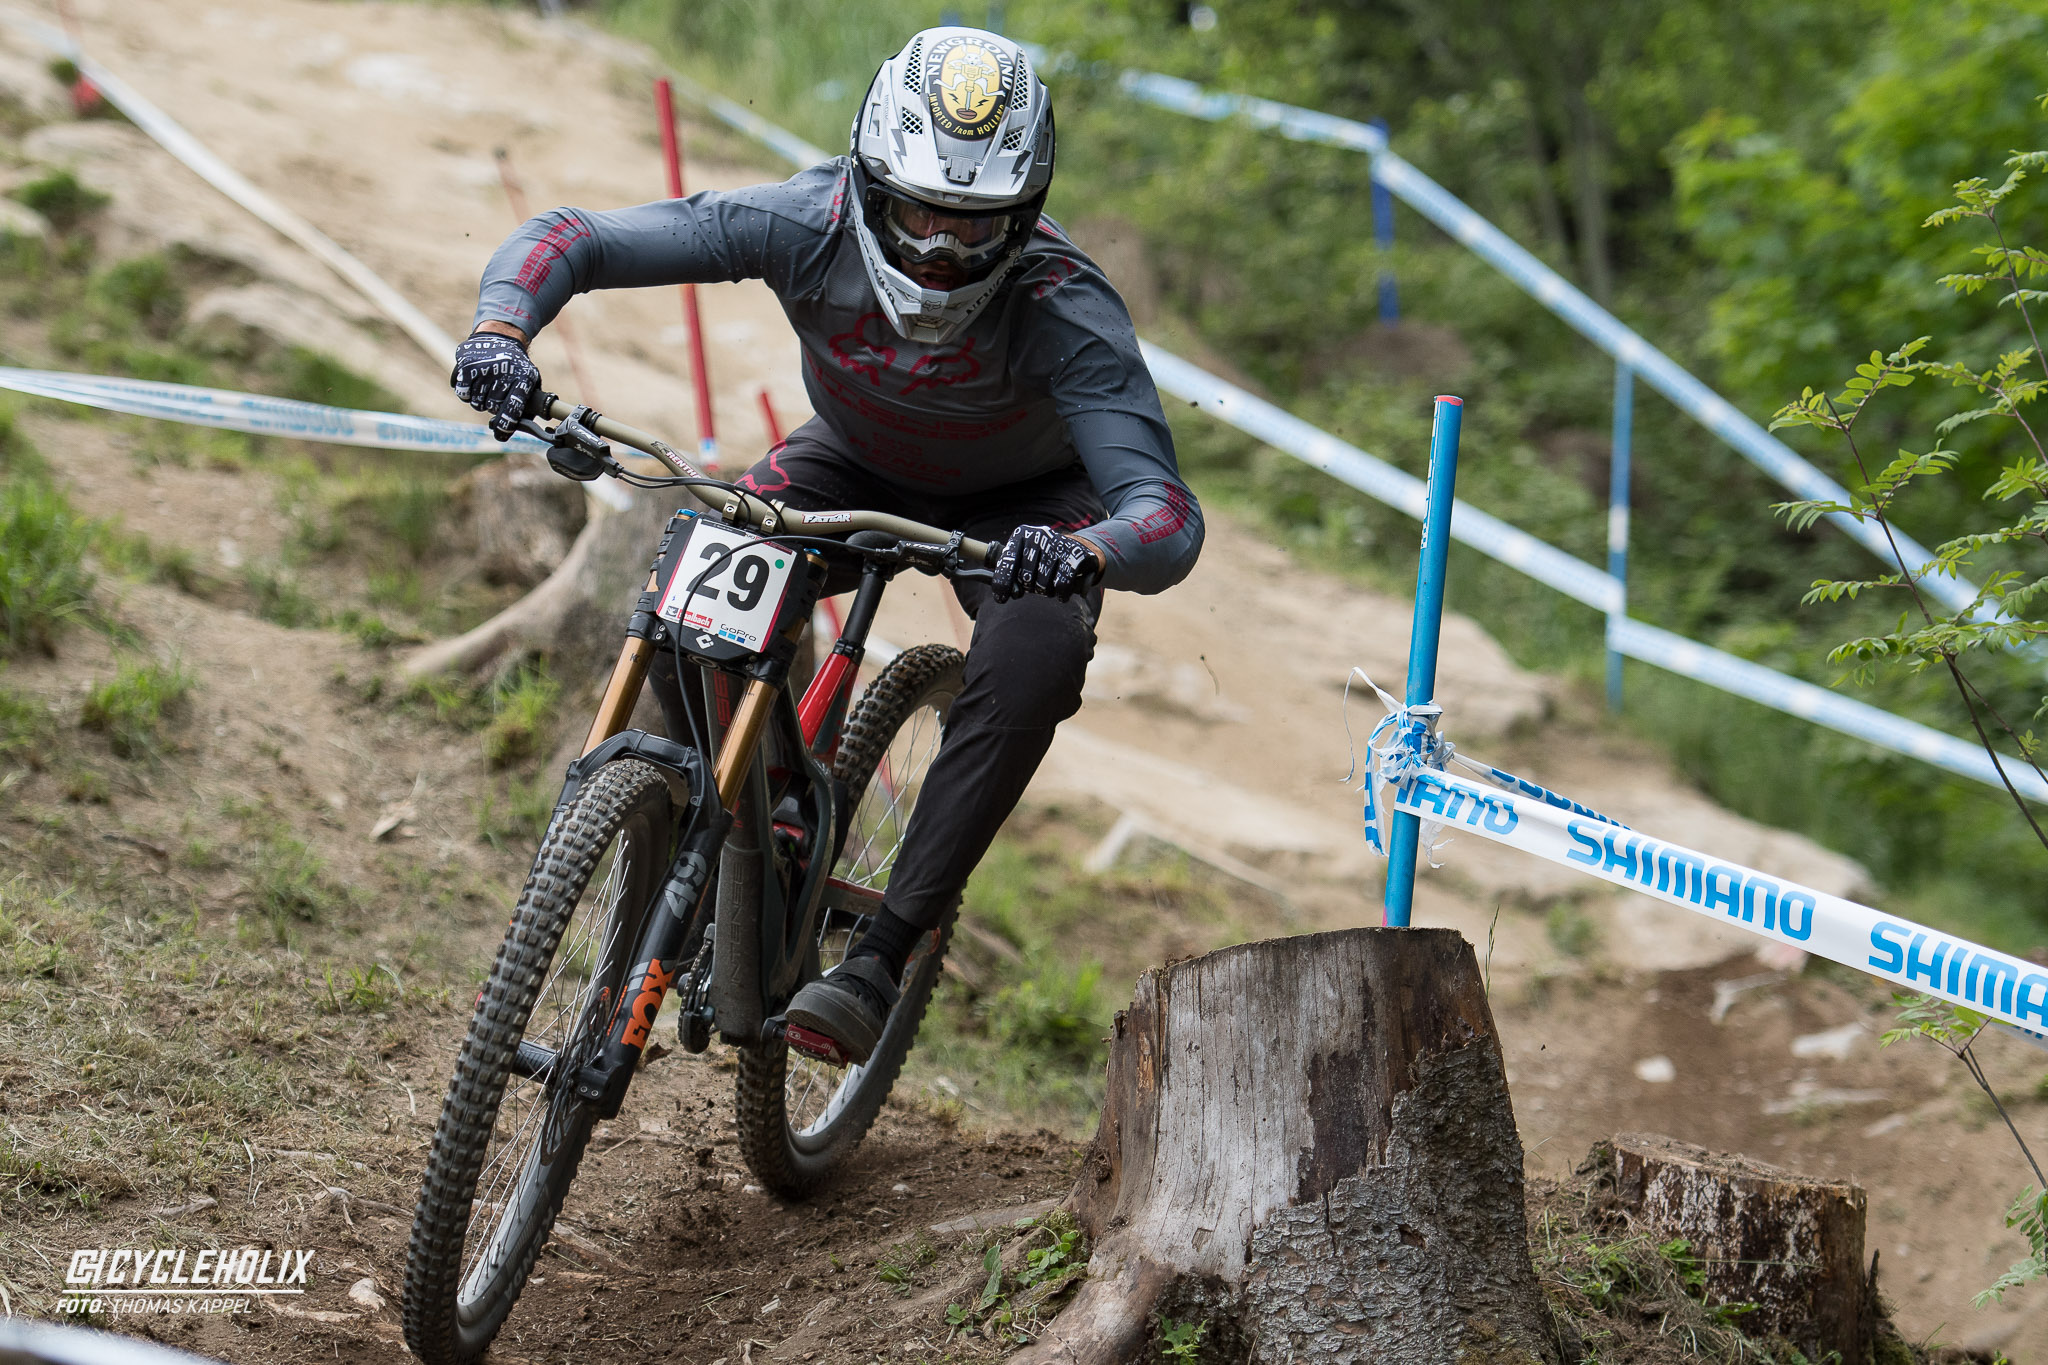 2019 Downhill Worldcup Leogang Finale Action QA 12 Cycleholix